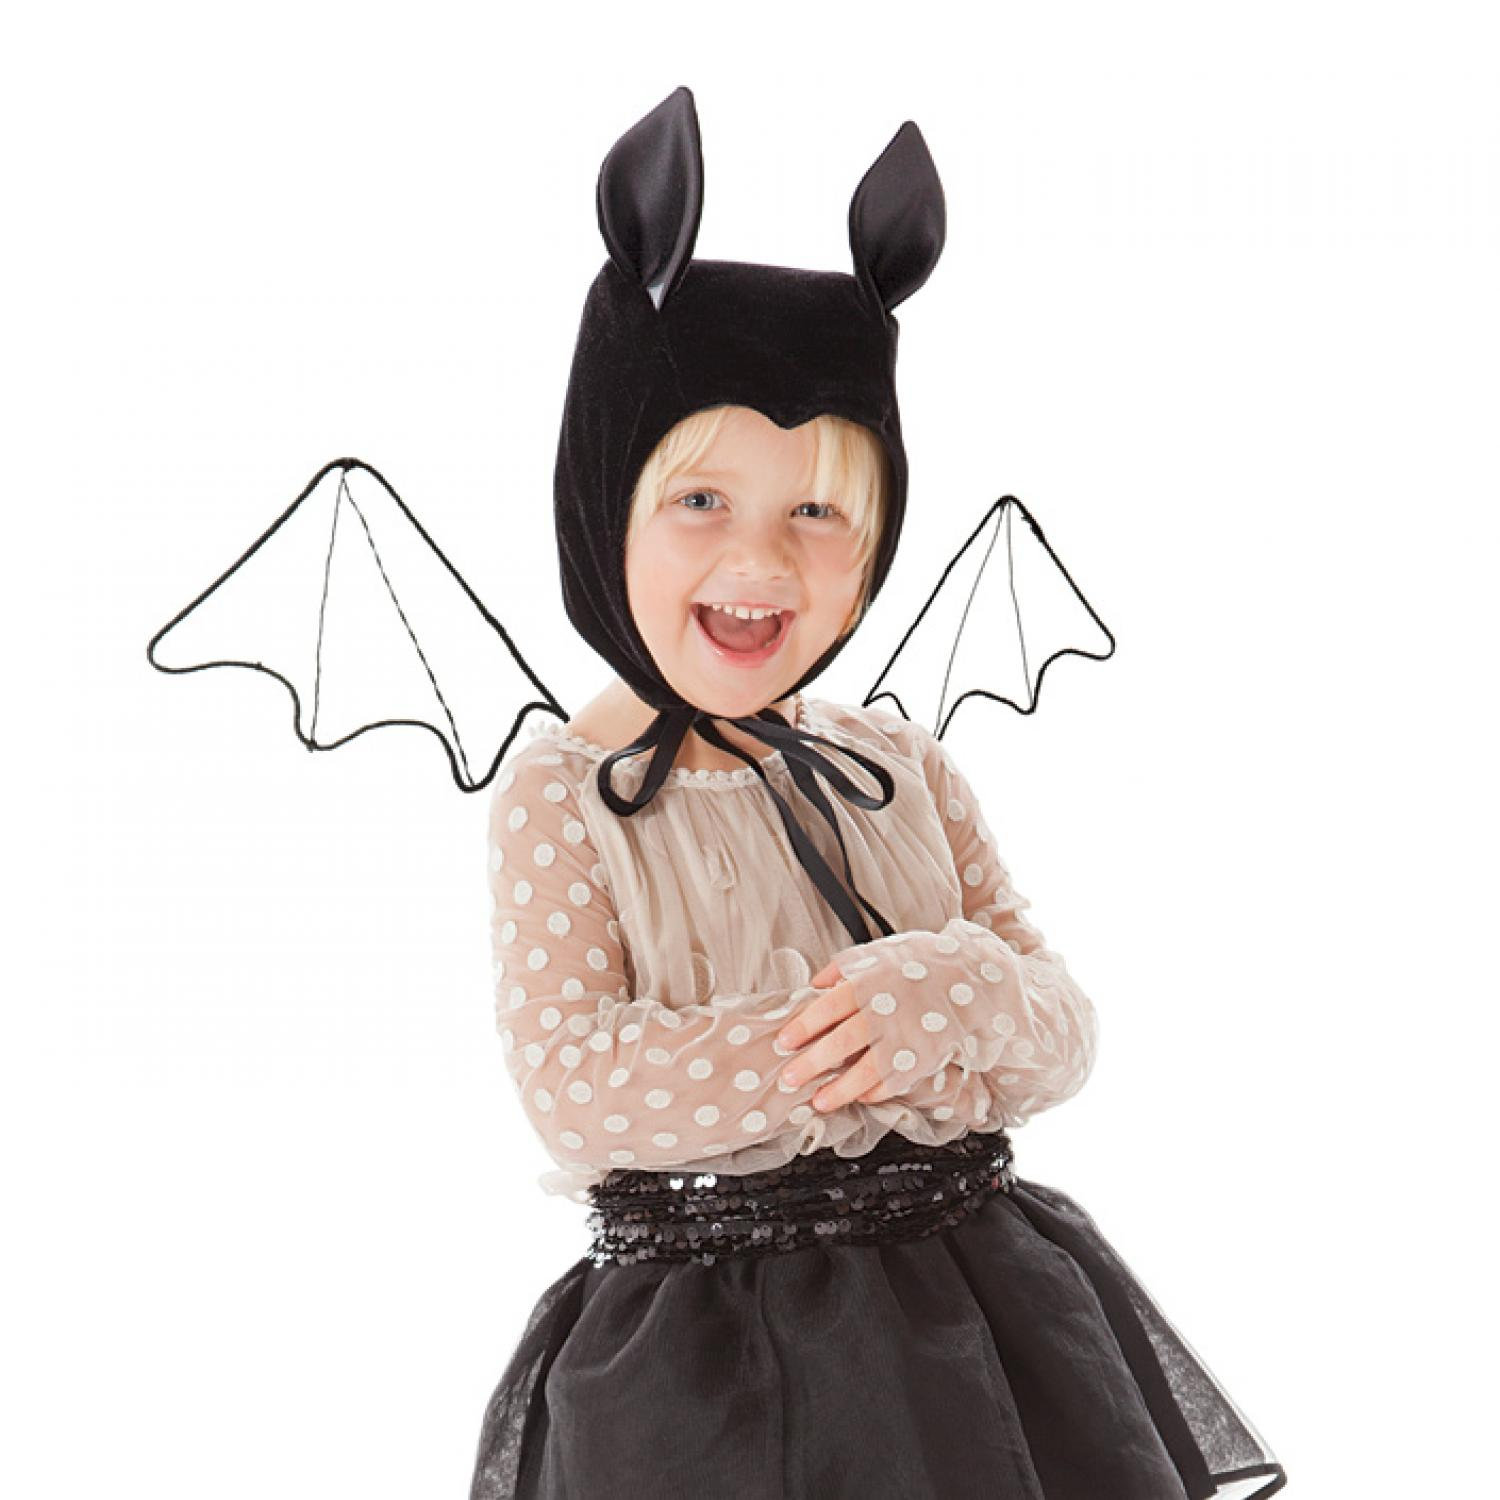 83ad2d577fbf Sc 1 St Parenting. image number 29 of babies halloween costumes ...